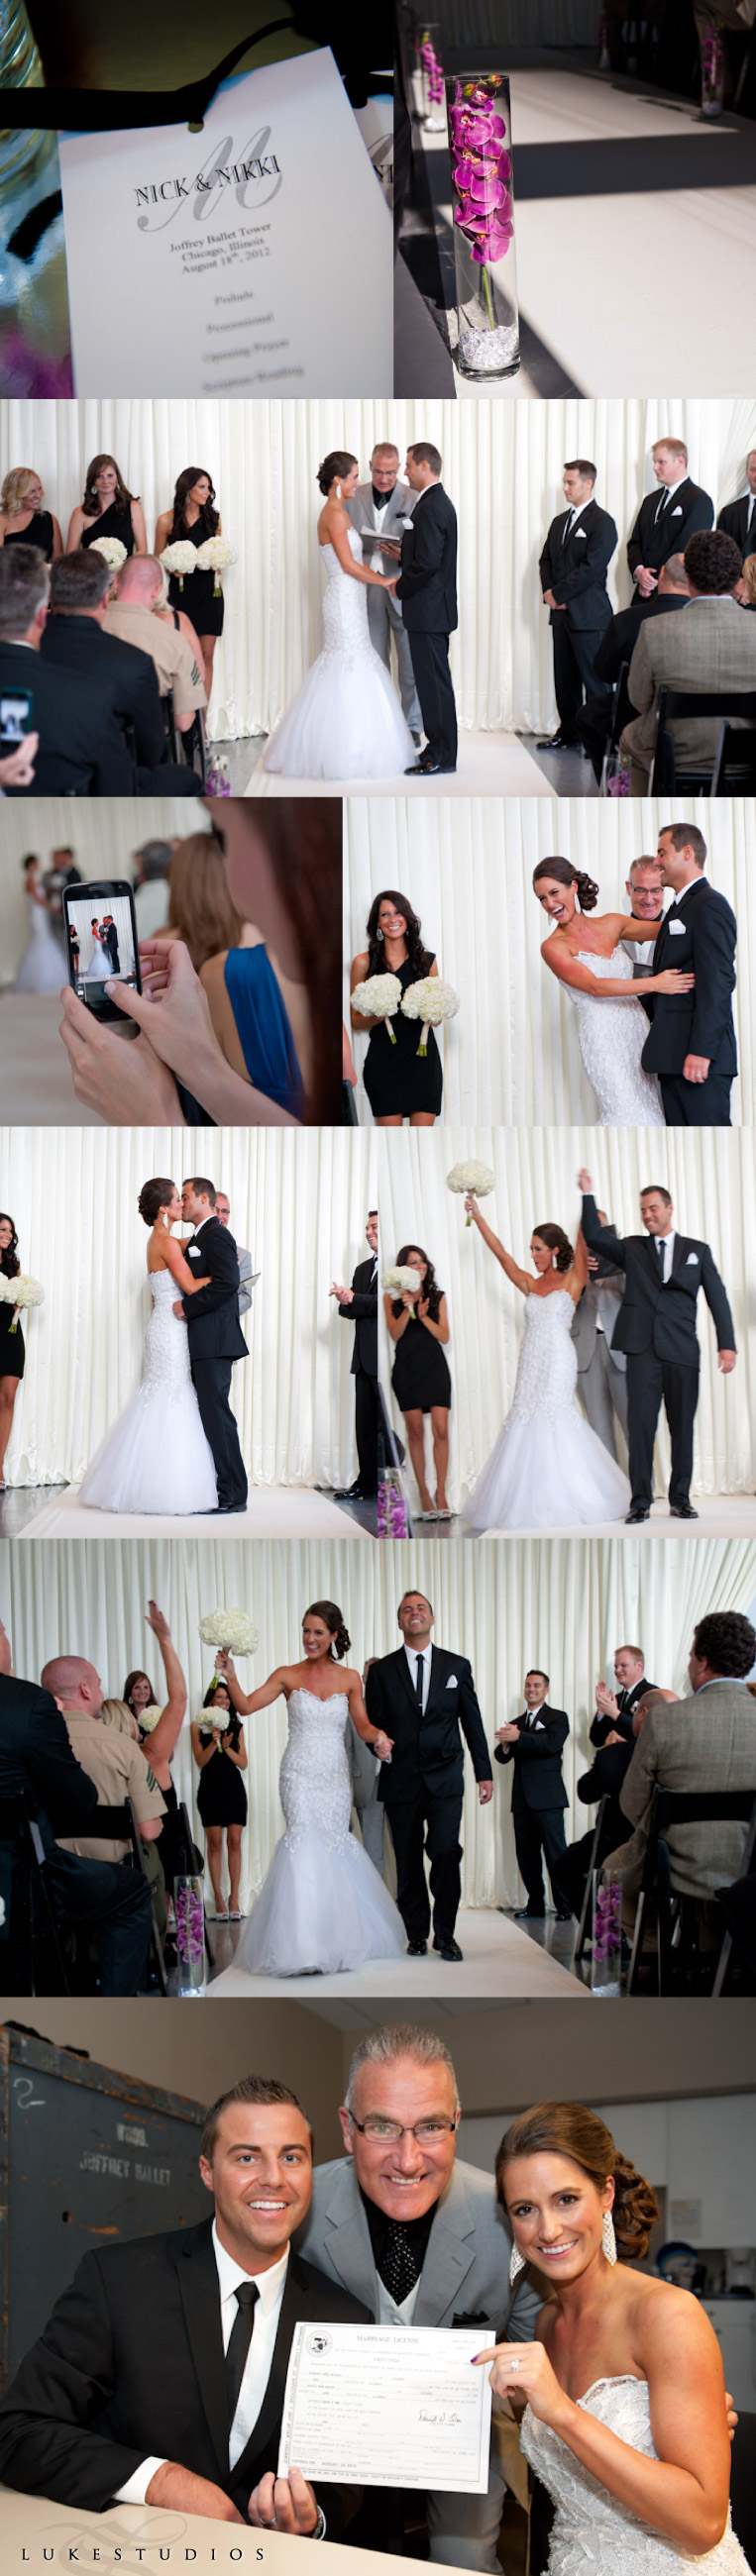 Highlights of a wedding ceremony at the Joffrey Ballet